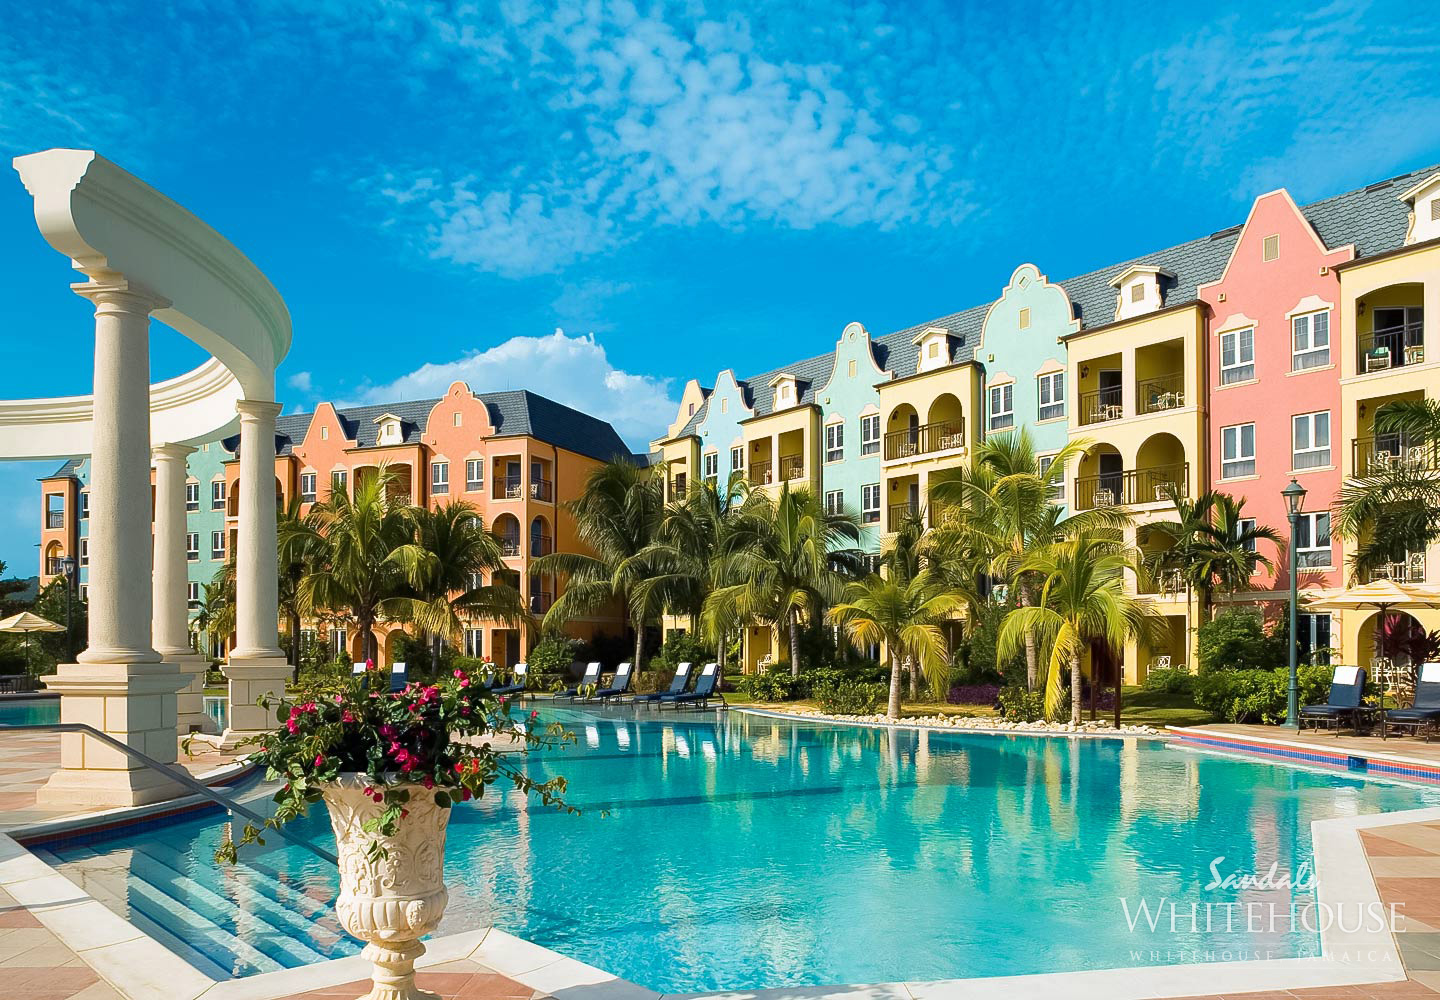 Image: Sandals Whitehouse, Jamaica/Sandals